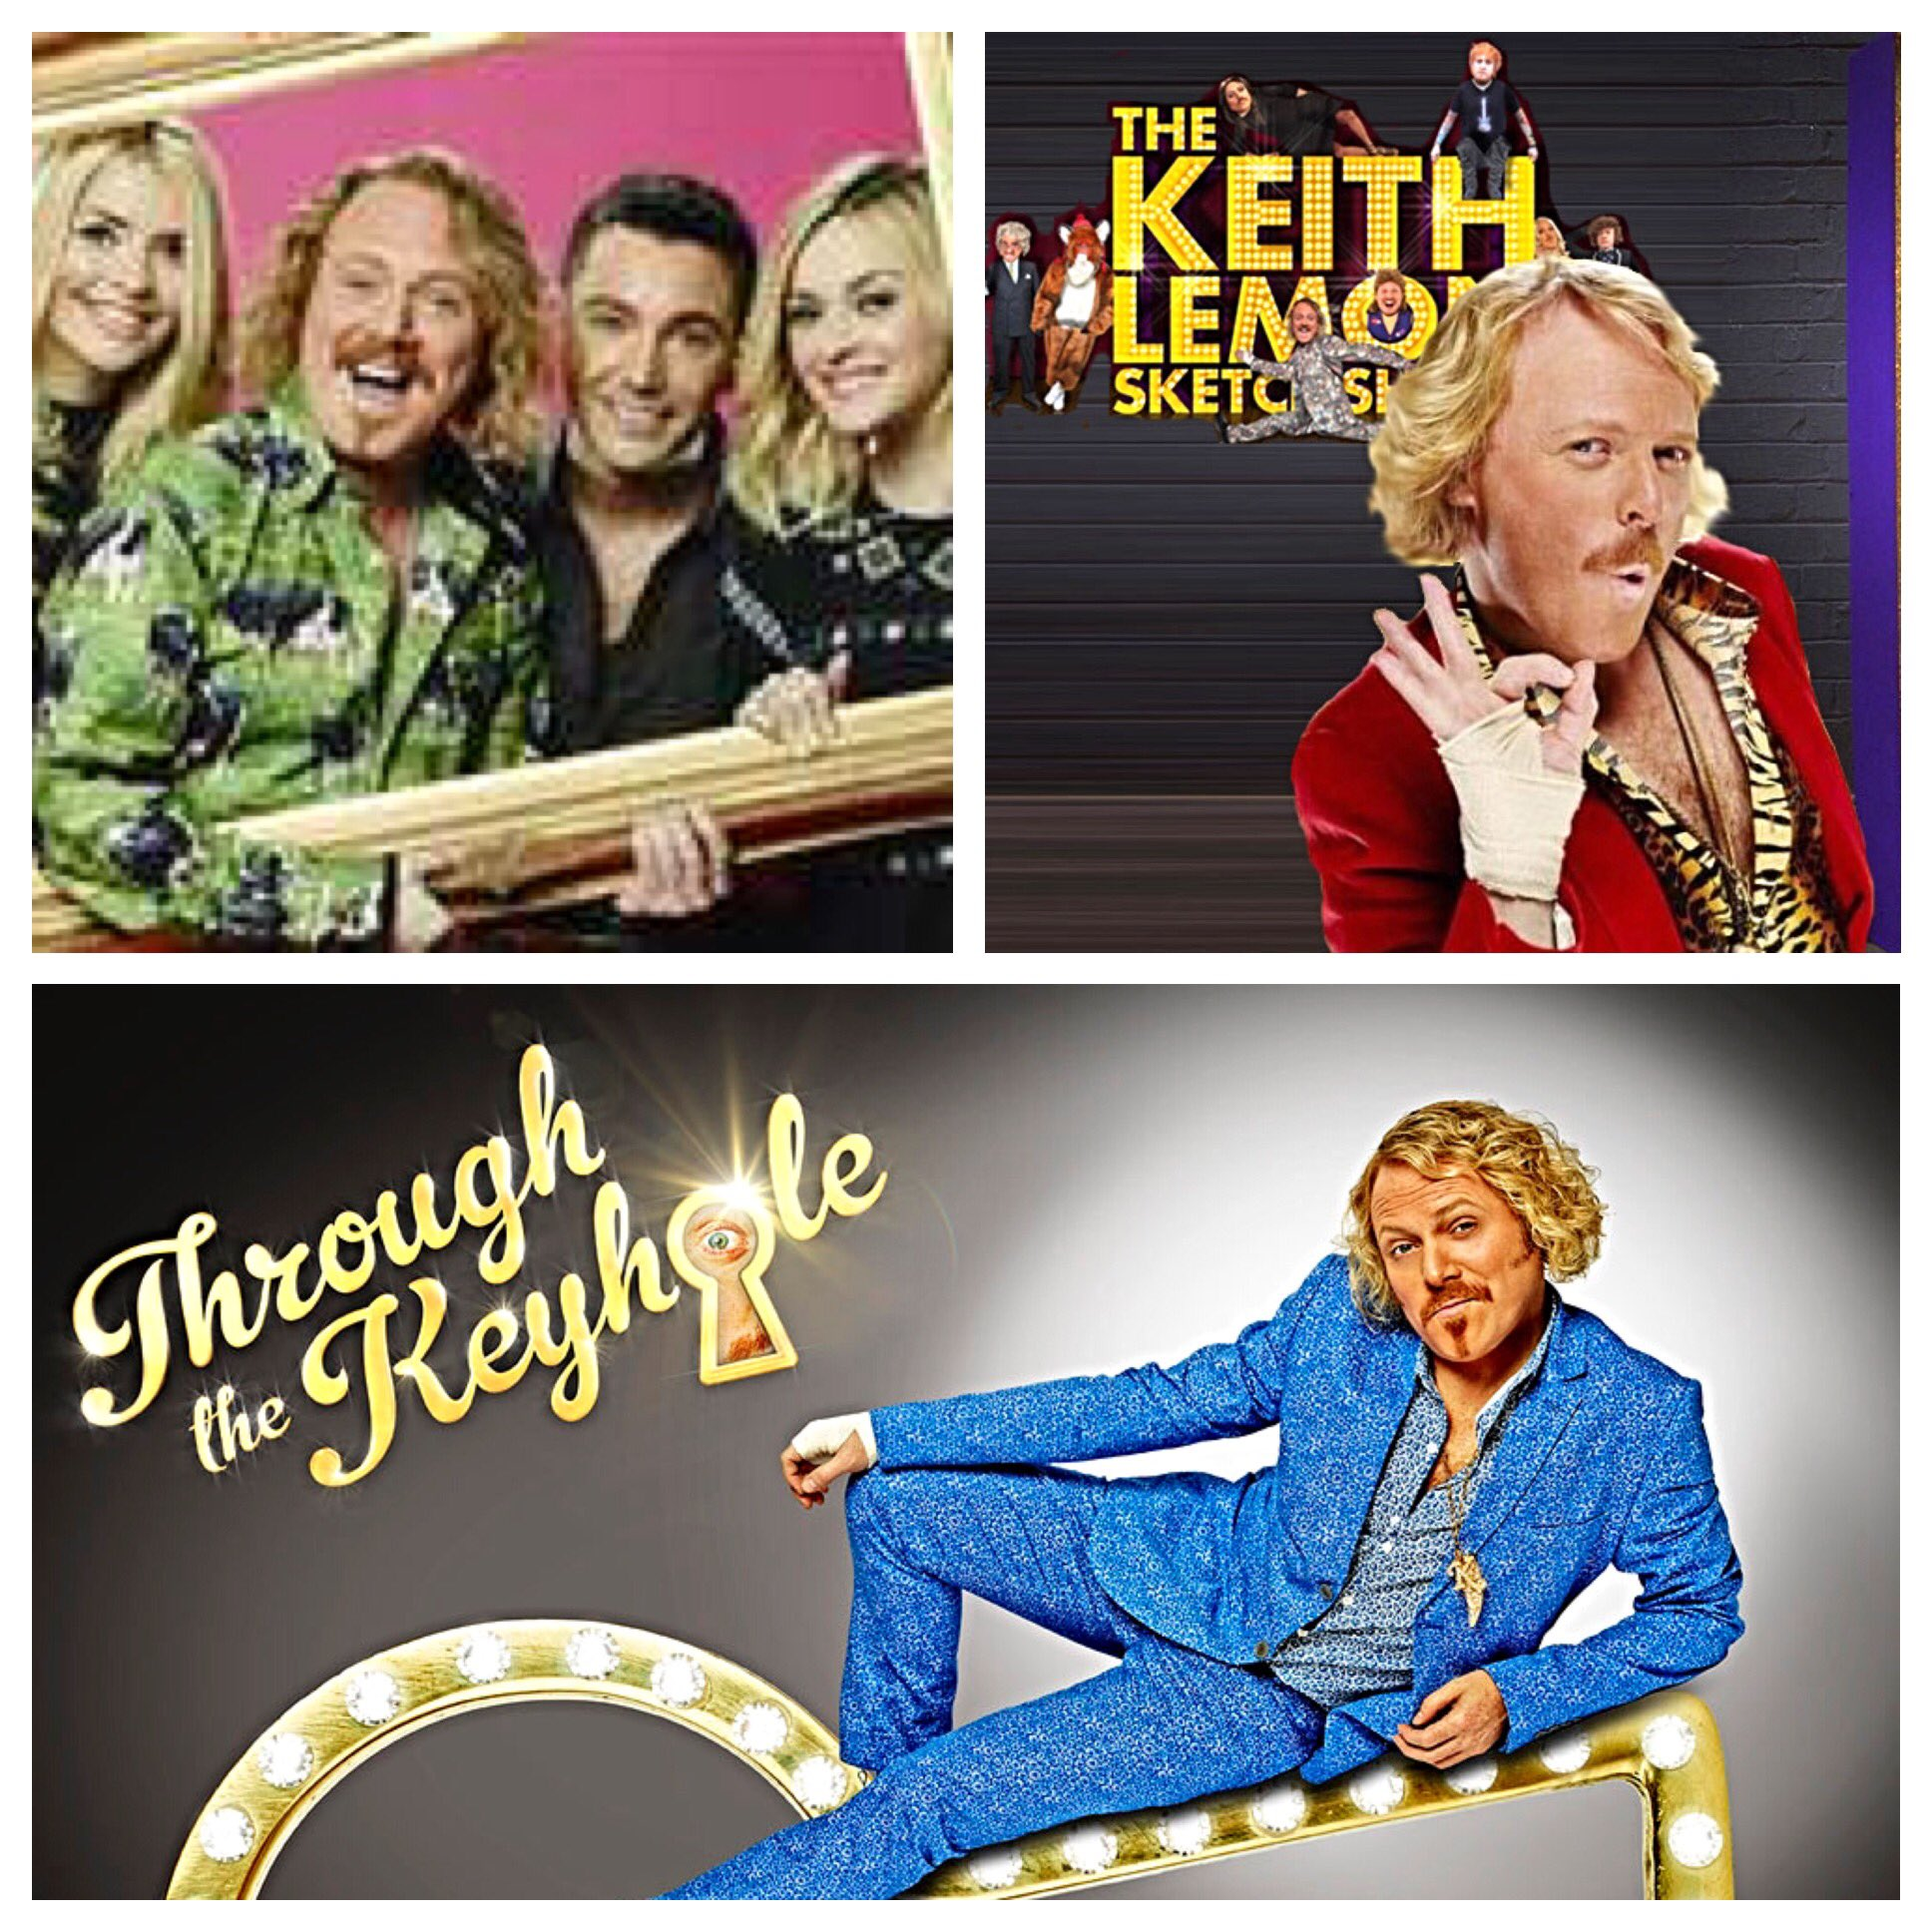 RT @SiGreg39: Keep voting for @LeighFrancis @lemontwittor https://t.co/x7mma6qX3o @CelebJuice @ThroughKeyhole @KLSketchShow 👨🍋😂💦💦🏆 https://…